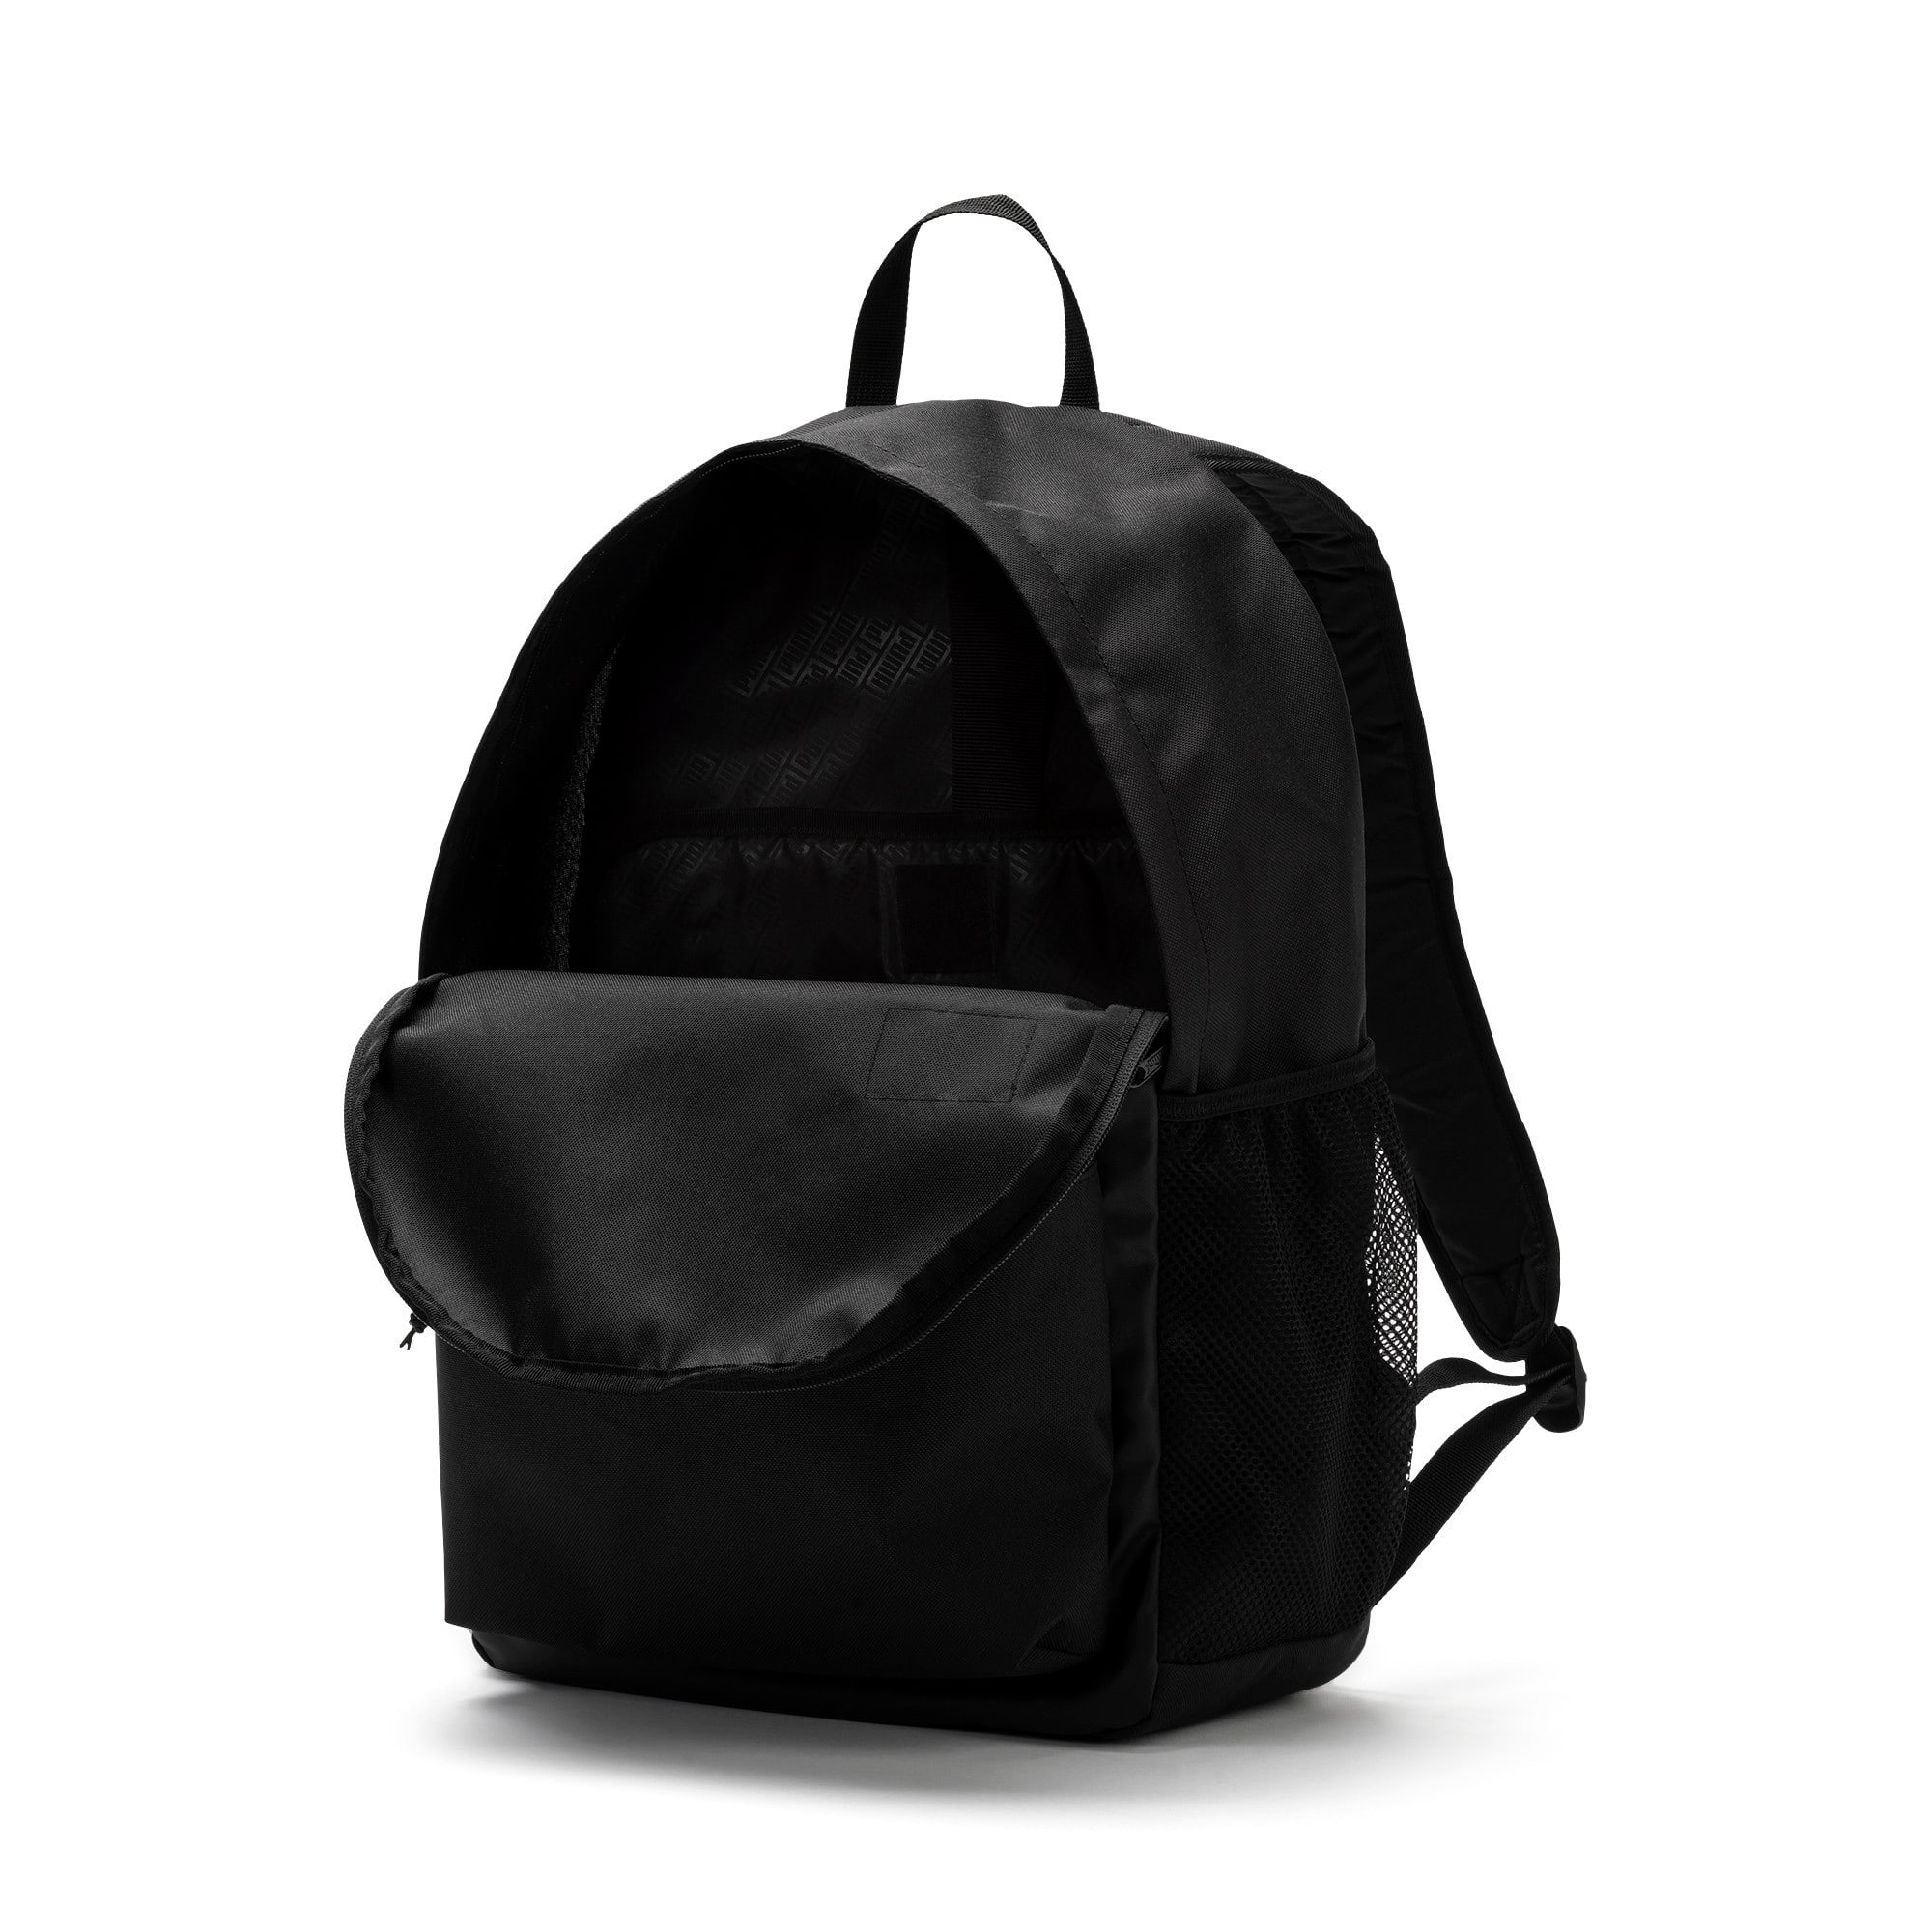 Thumbnail 3 of Academy Rucksack, Puma Black, medium